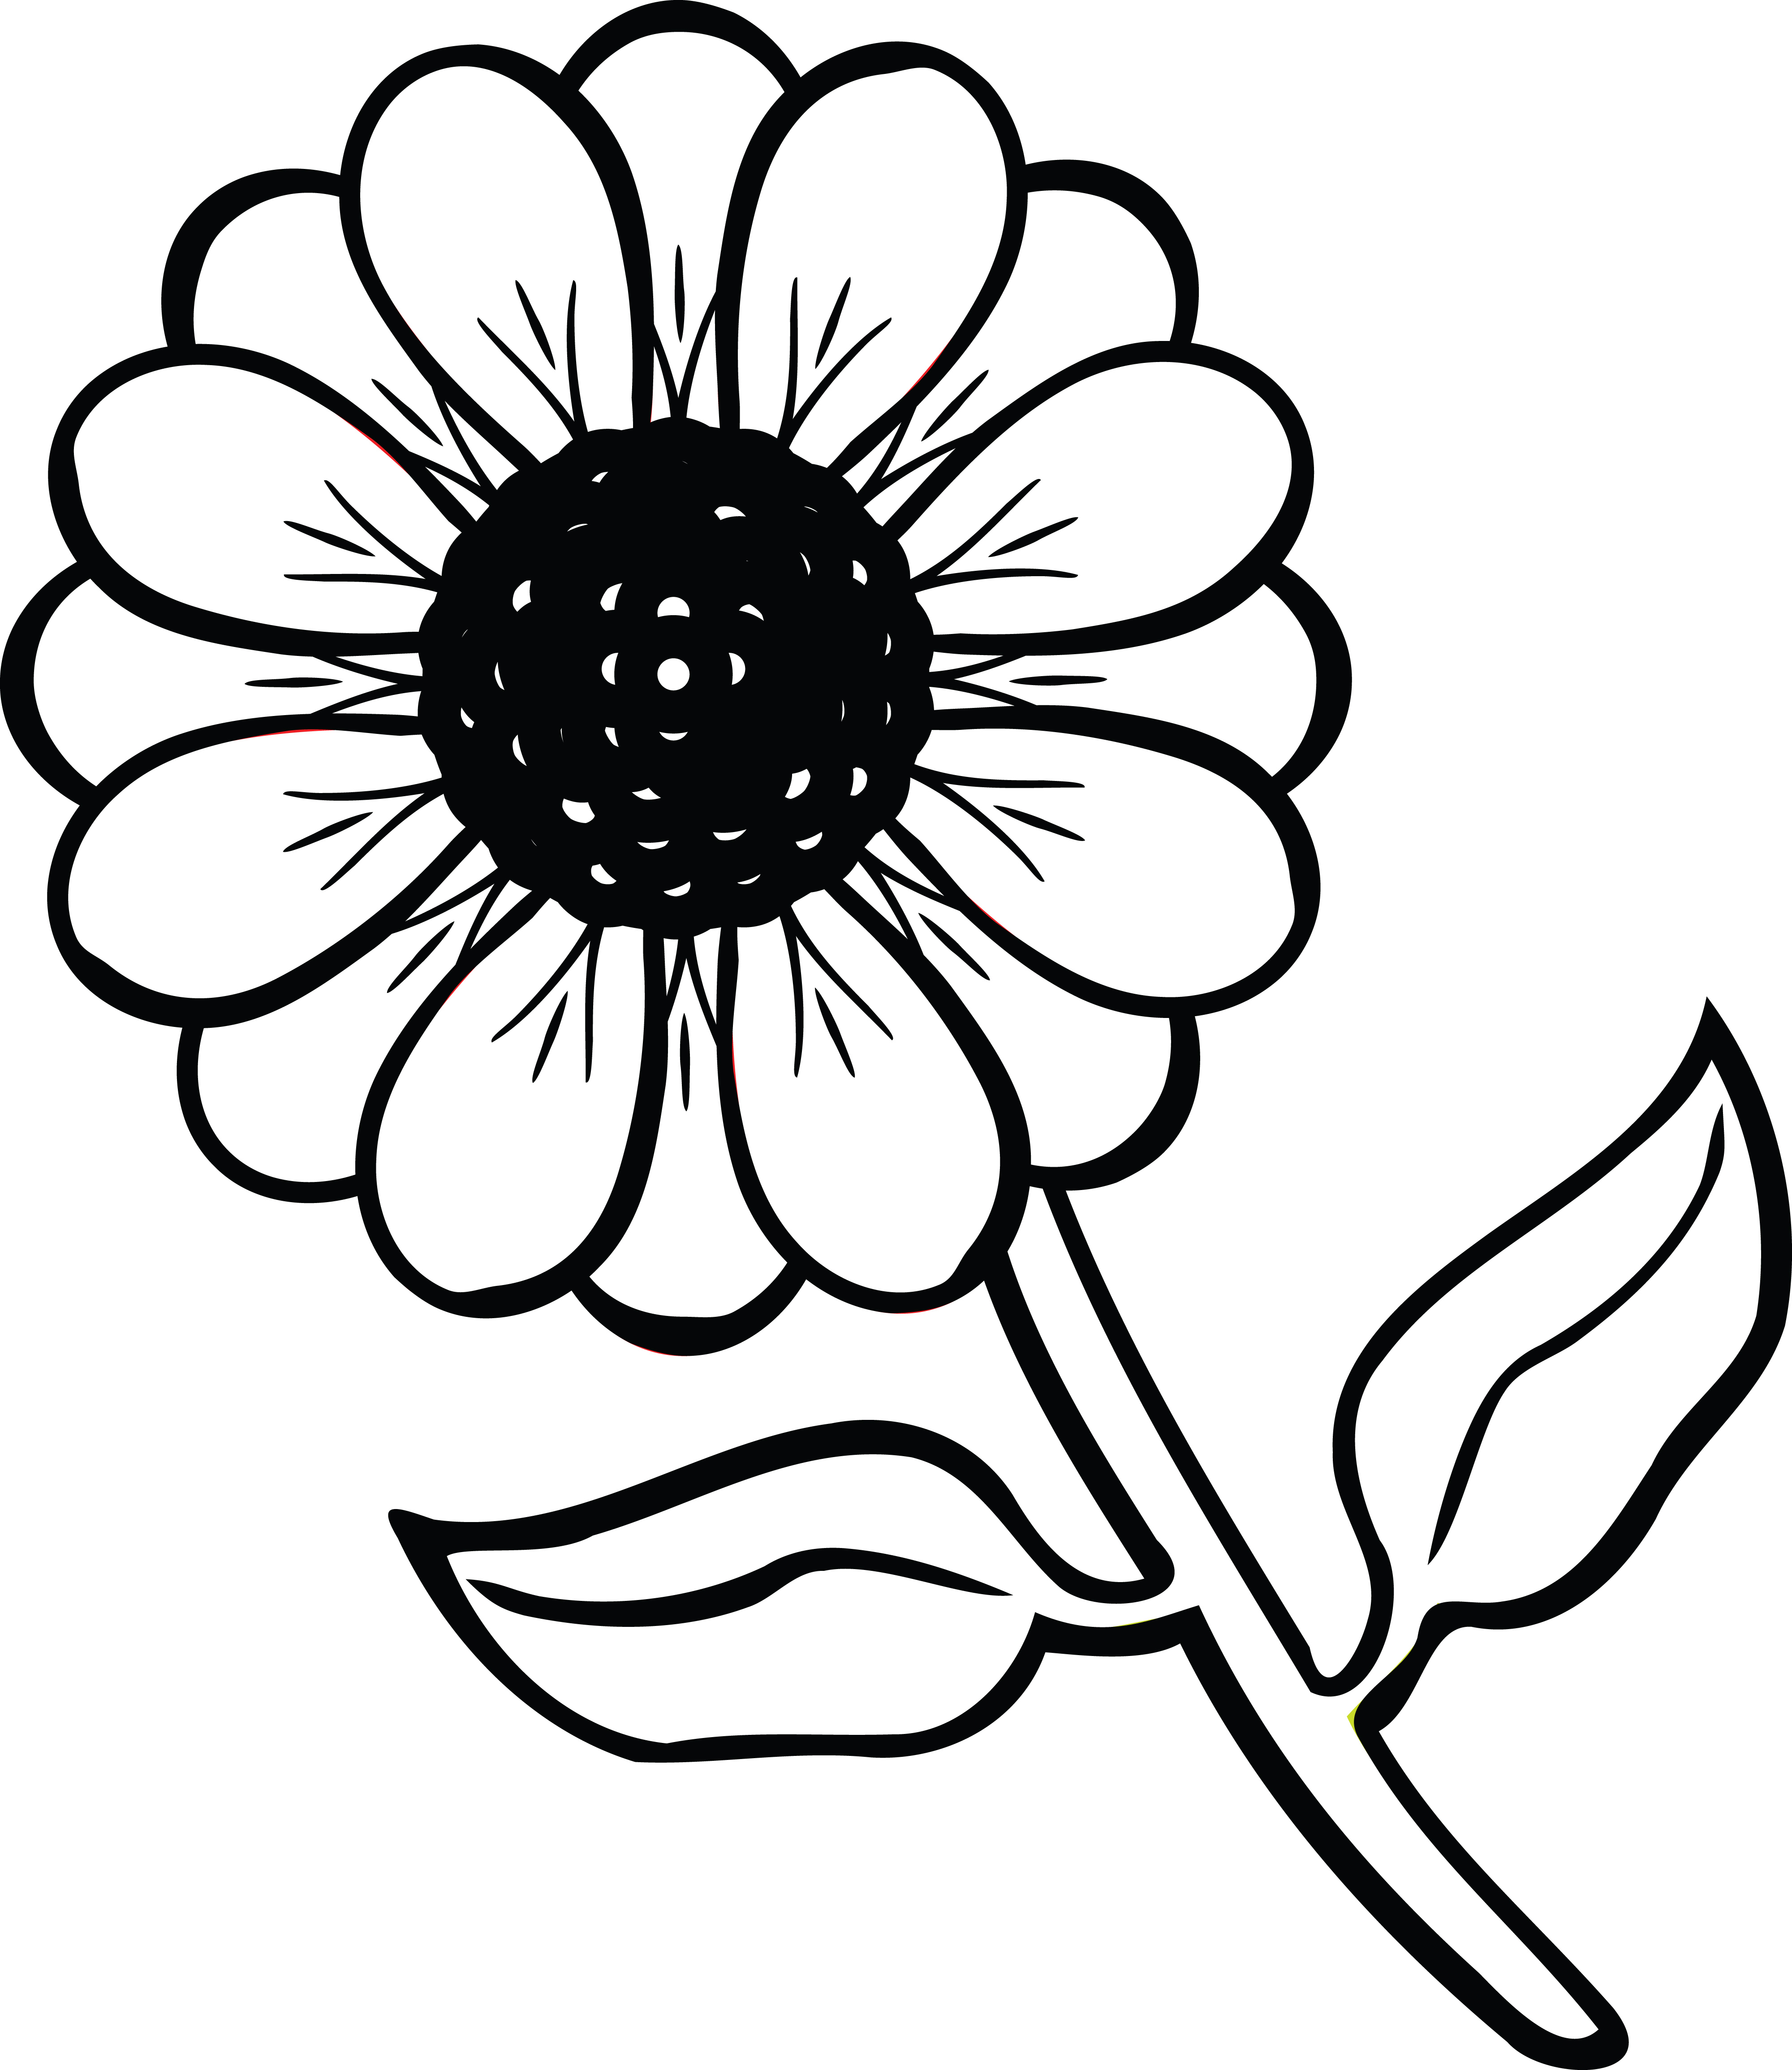 Daisies clipart black and white. Daisy free download best